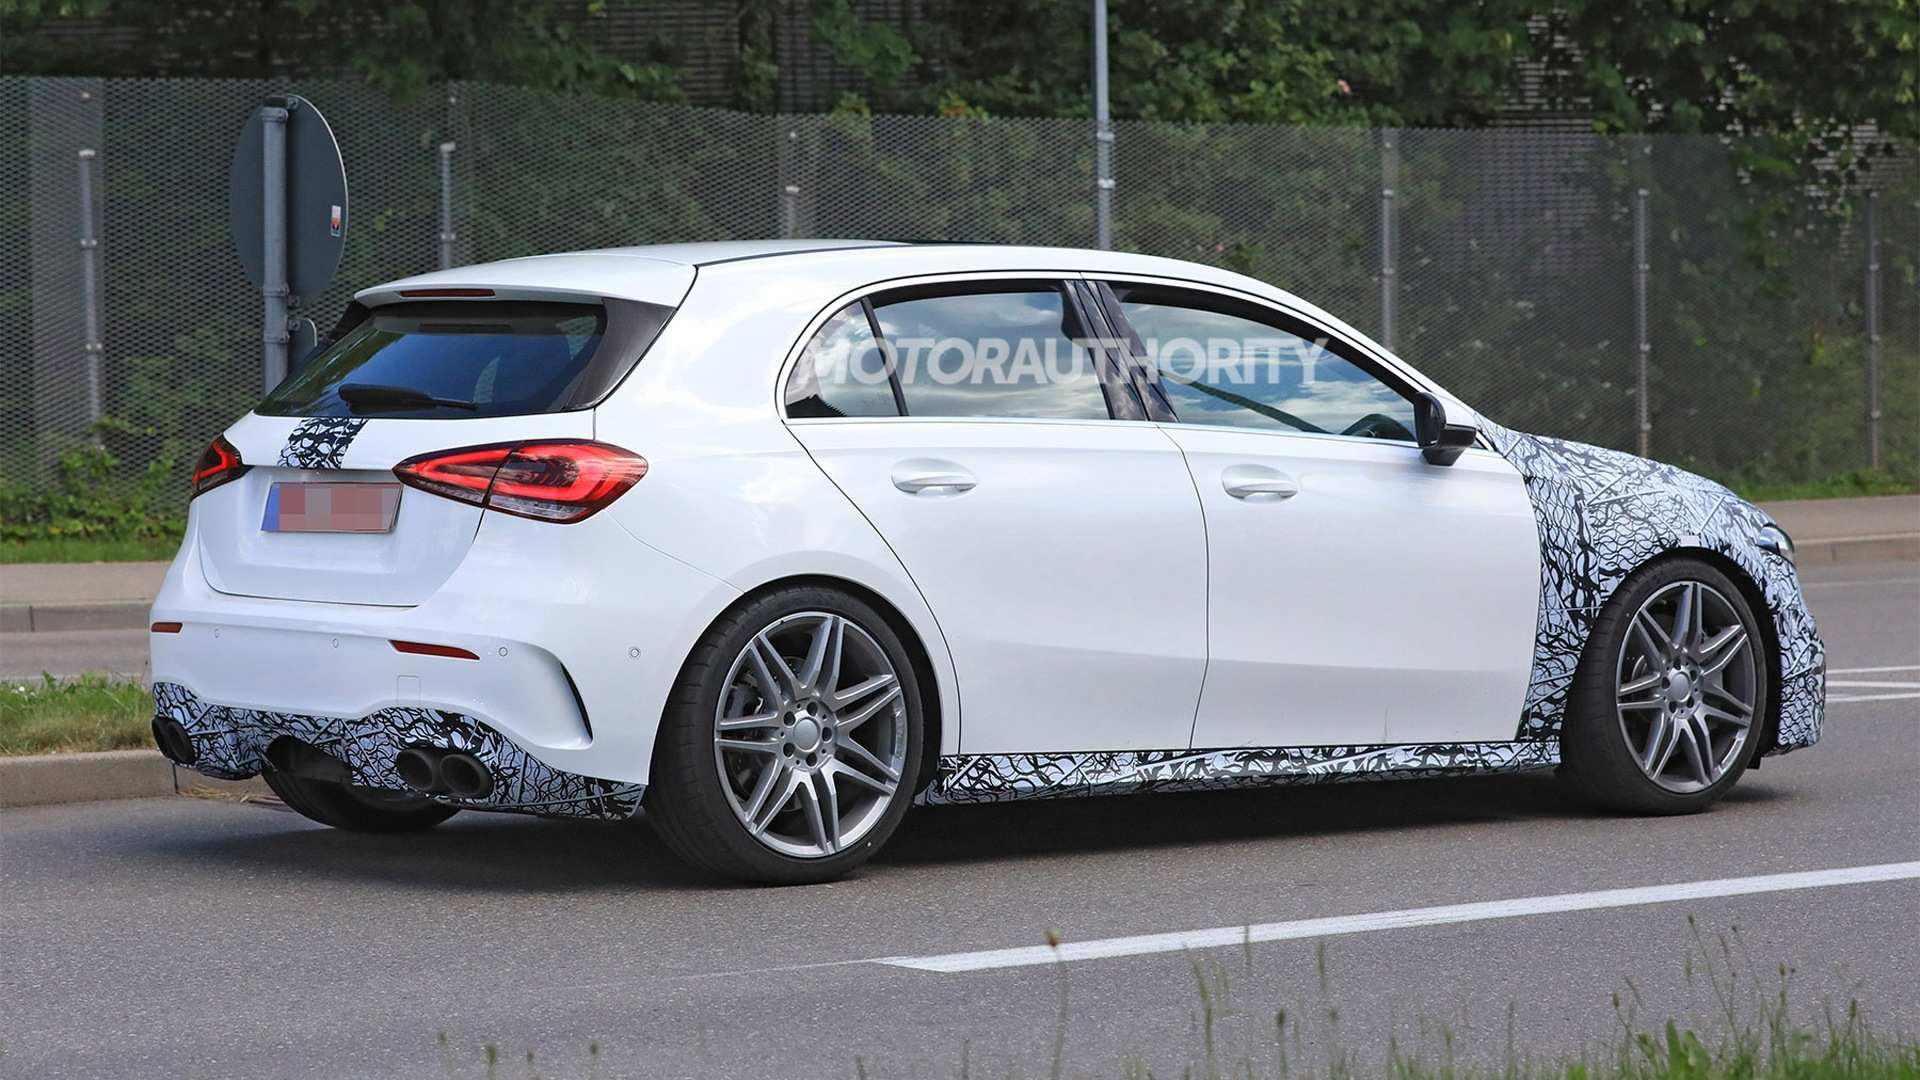 49 New Mercedes Hatchback 2020 Style with Mercedes Hatchback 2020